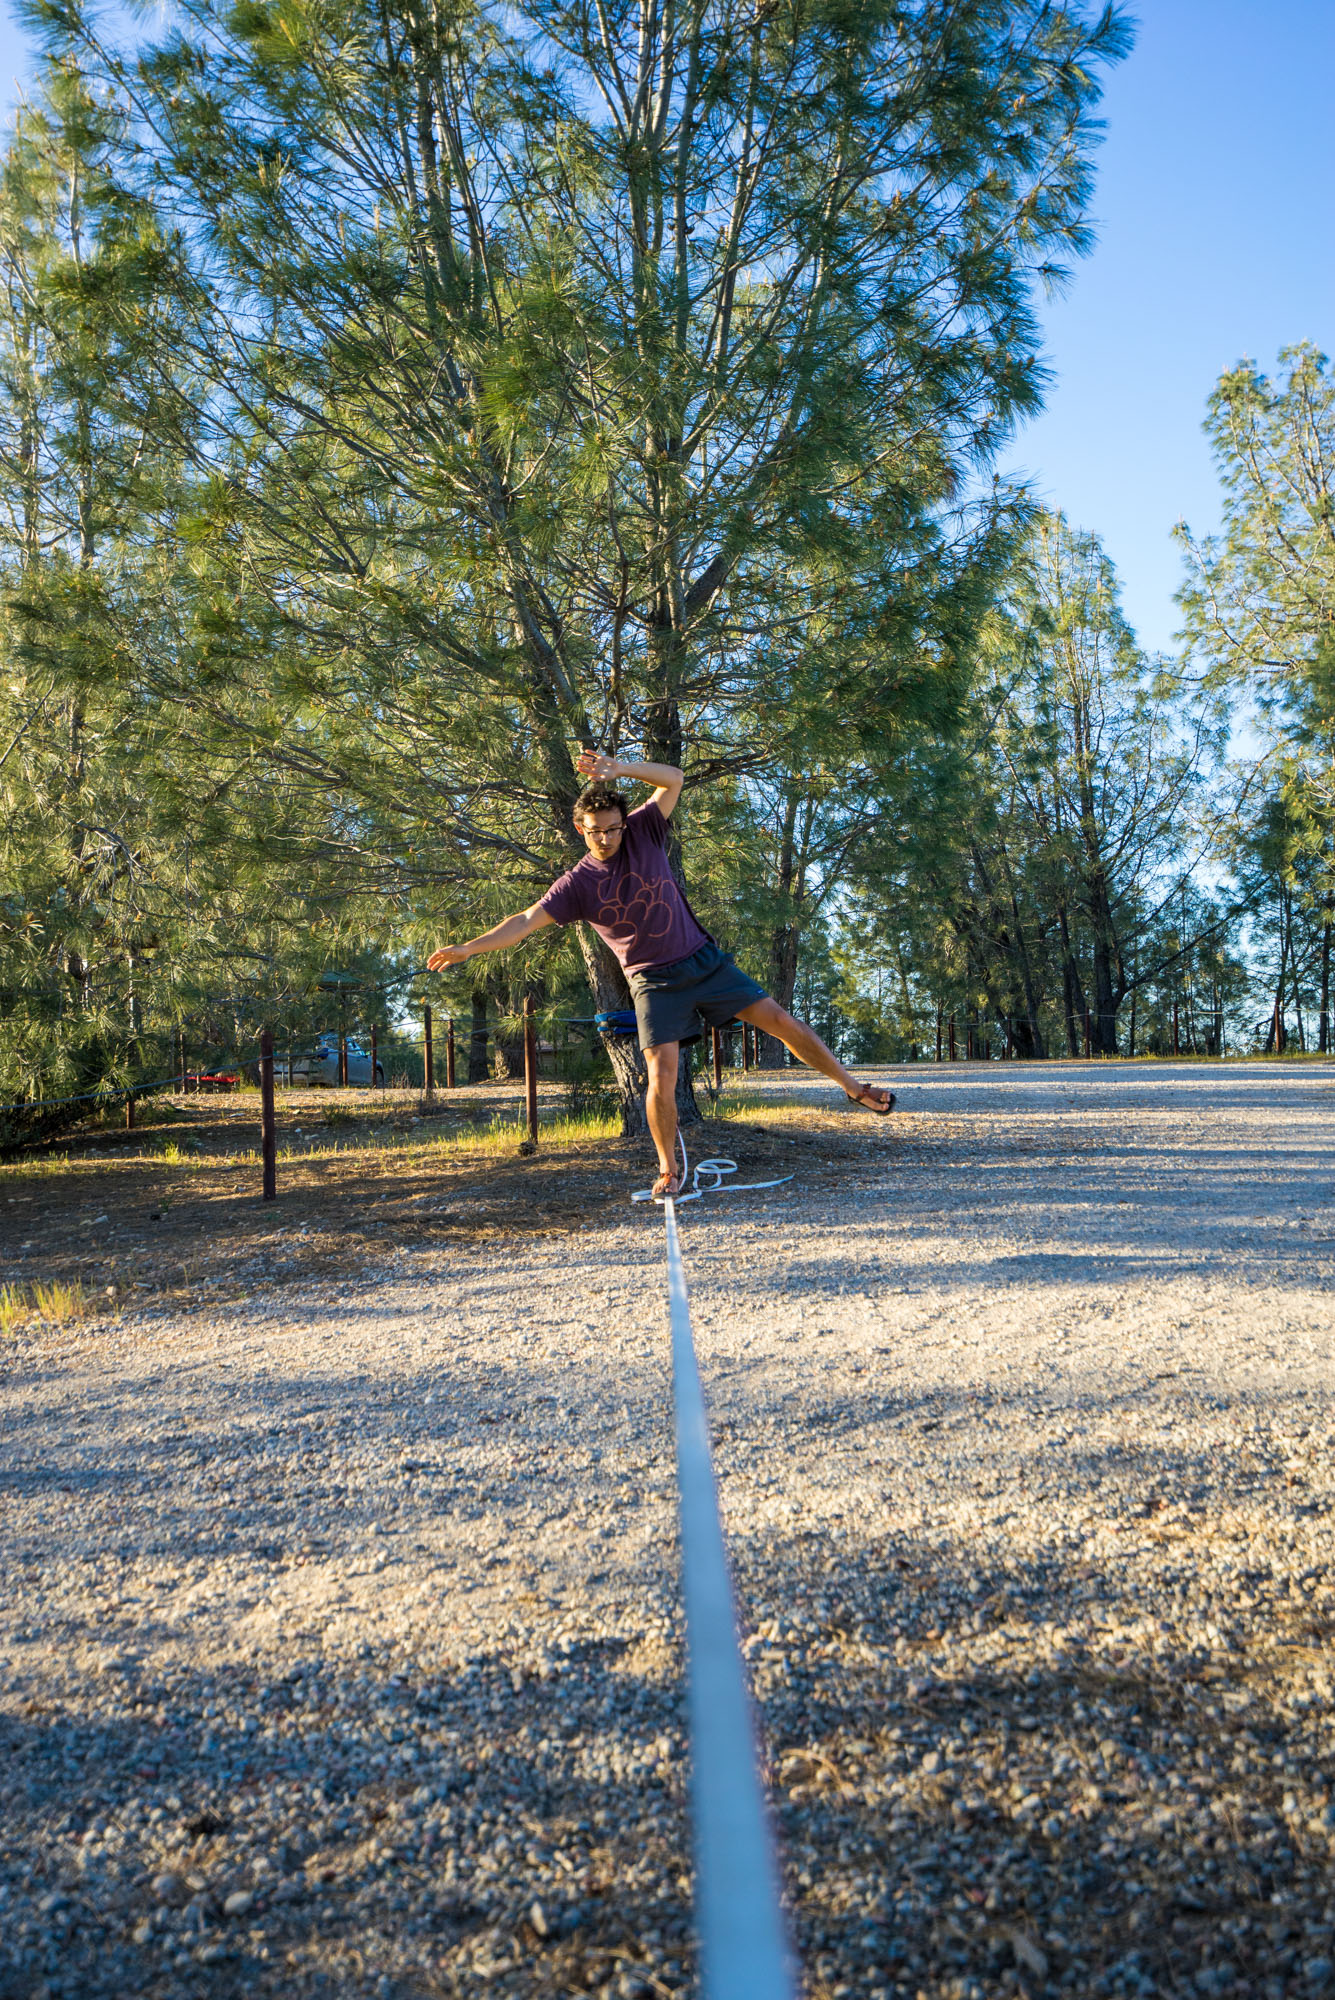 Owen practicing on the new slackline